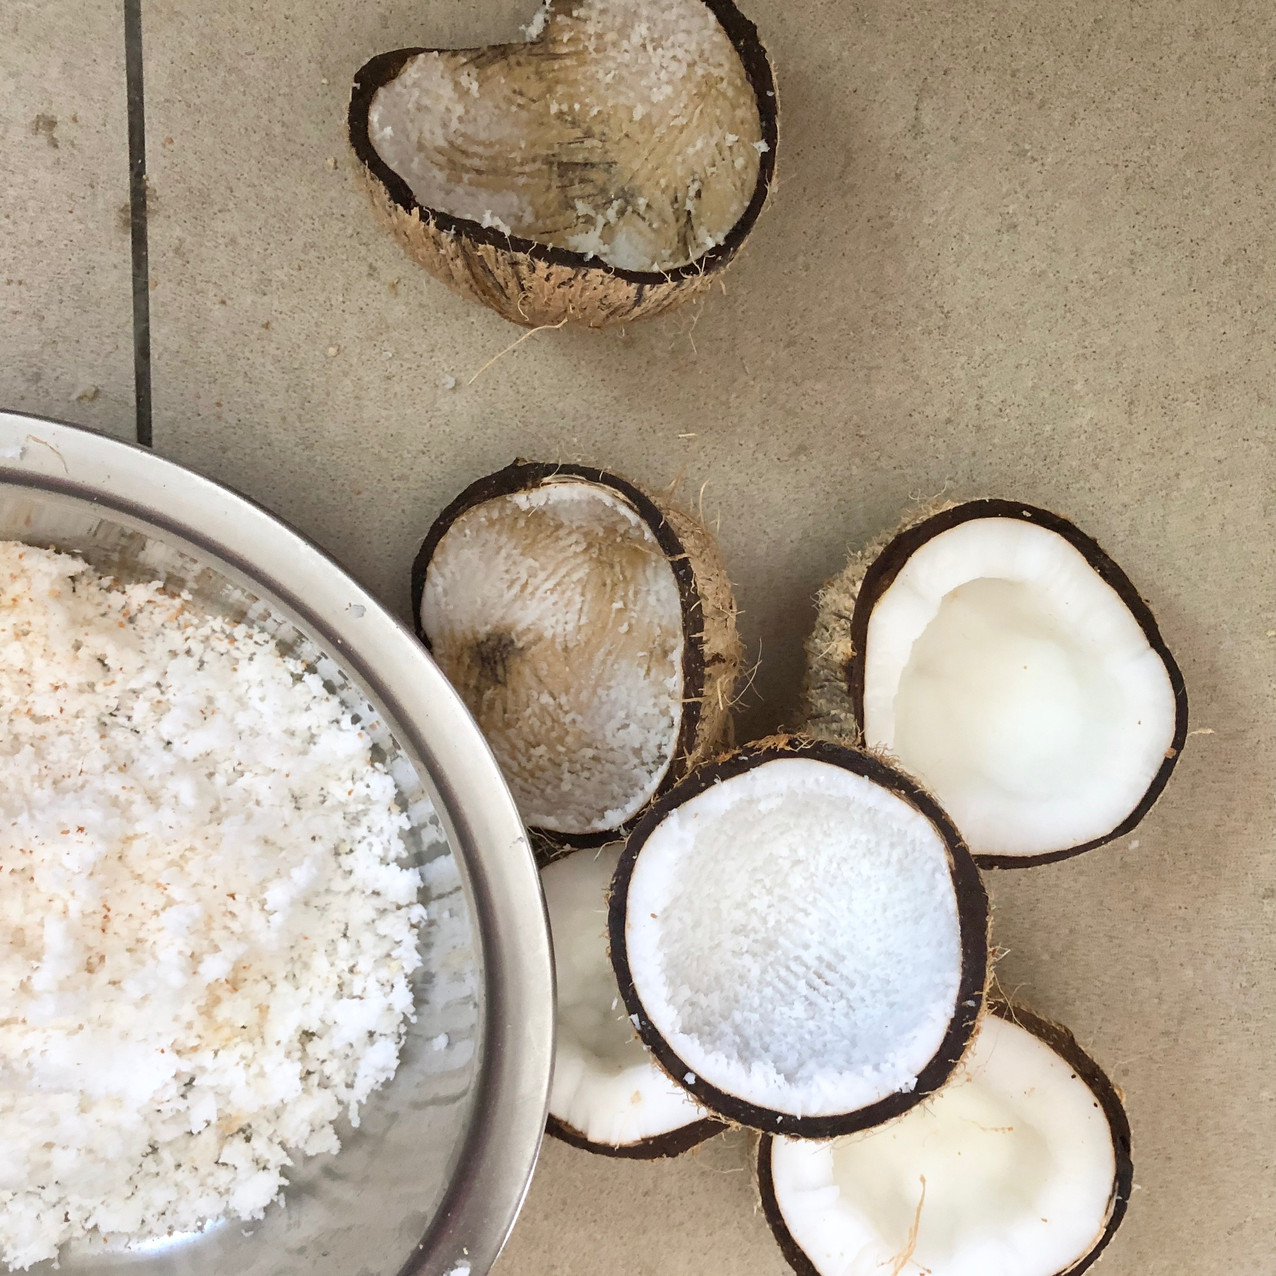 grated-coconut-fresh-youngcoconut-natura